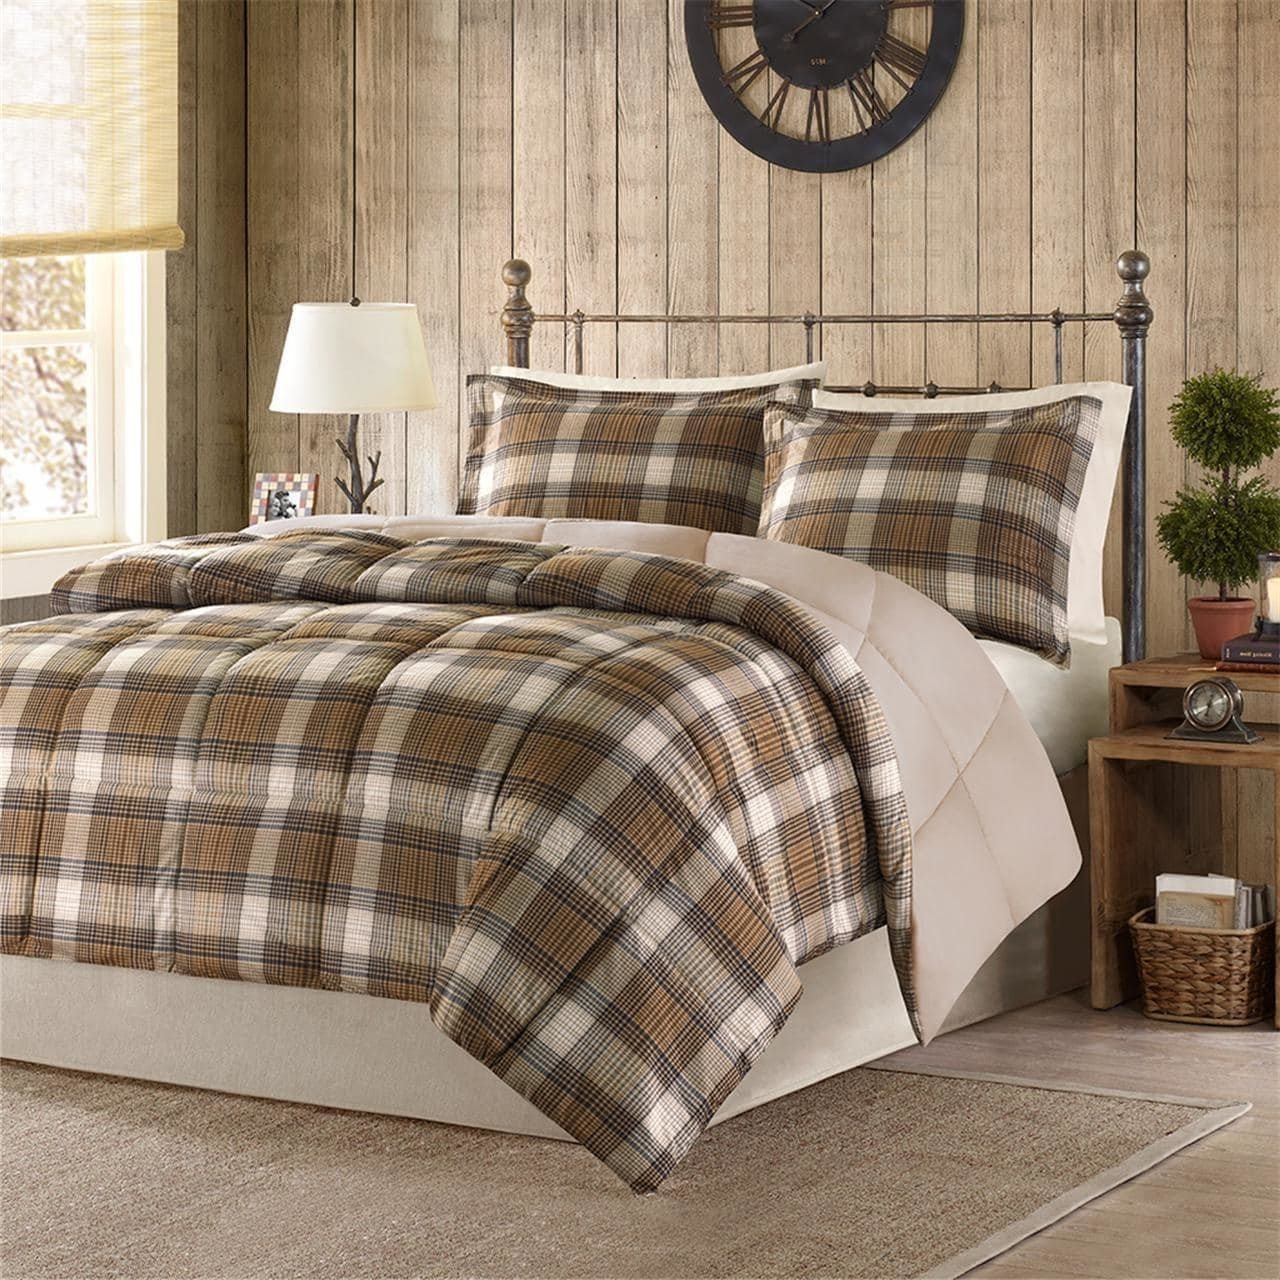 3 Piece Brown Lumberjack Plaid Pattern Comforter Full Queen Set, Elegant Luxurious Classic Cabin Lodge Gingham Checkered Design, Features Down Alternative Filling, Super Soft & Warmth, Polyester